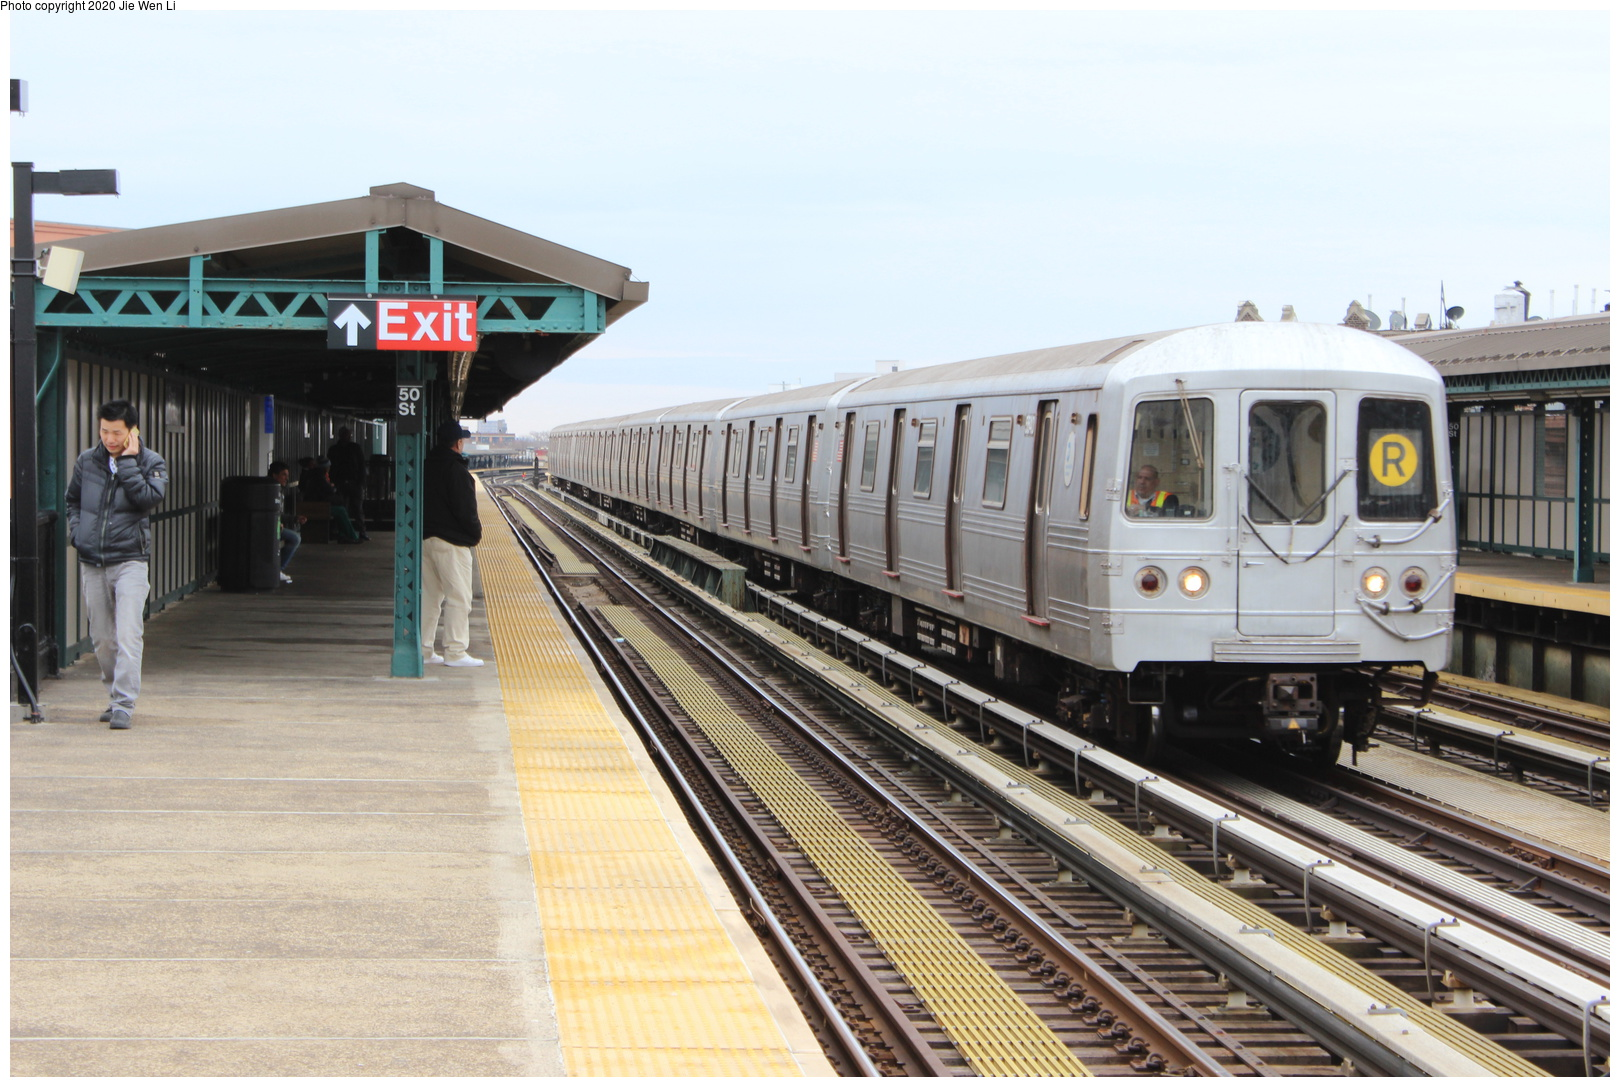 (188k, 1044x694)<br><b>Country:</b> United States<br><b>City:</b> New York<br><b>System:</b> New York City Transit<br><b>Line:</b> IRT Flushing Line<br><b>Location:</b> 46th Street/Bliss Street <br><b>Car:</b> Low-V Worlds Fair  <br><b>Photo by:</b> Joel Shanus<br><b>Viewed (this week/total):</b> 2 / 1834